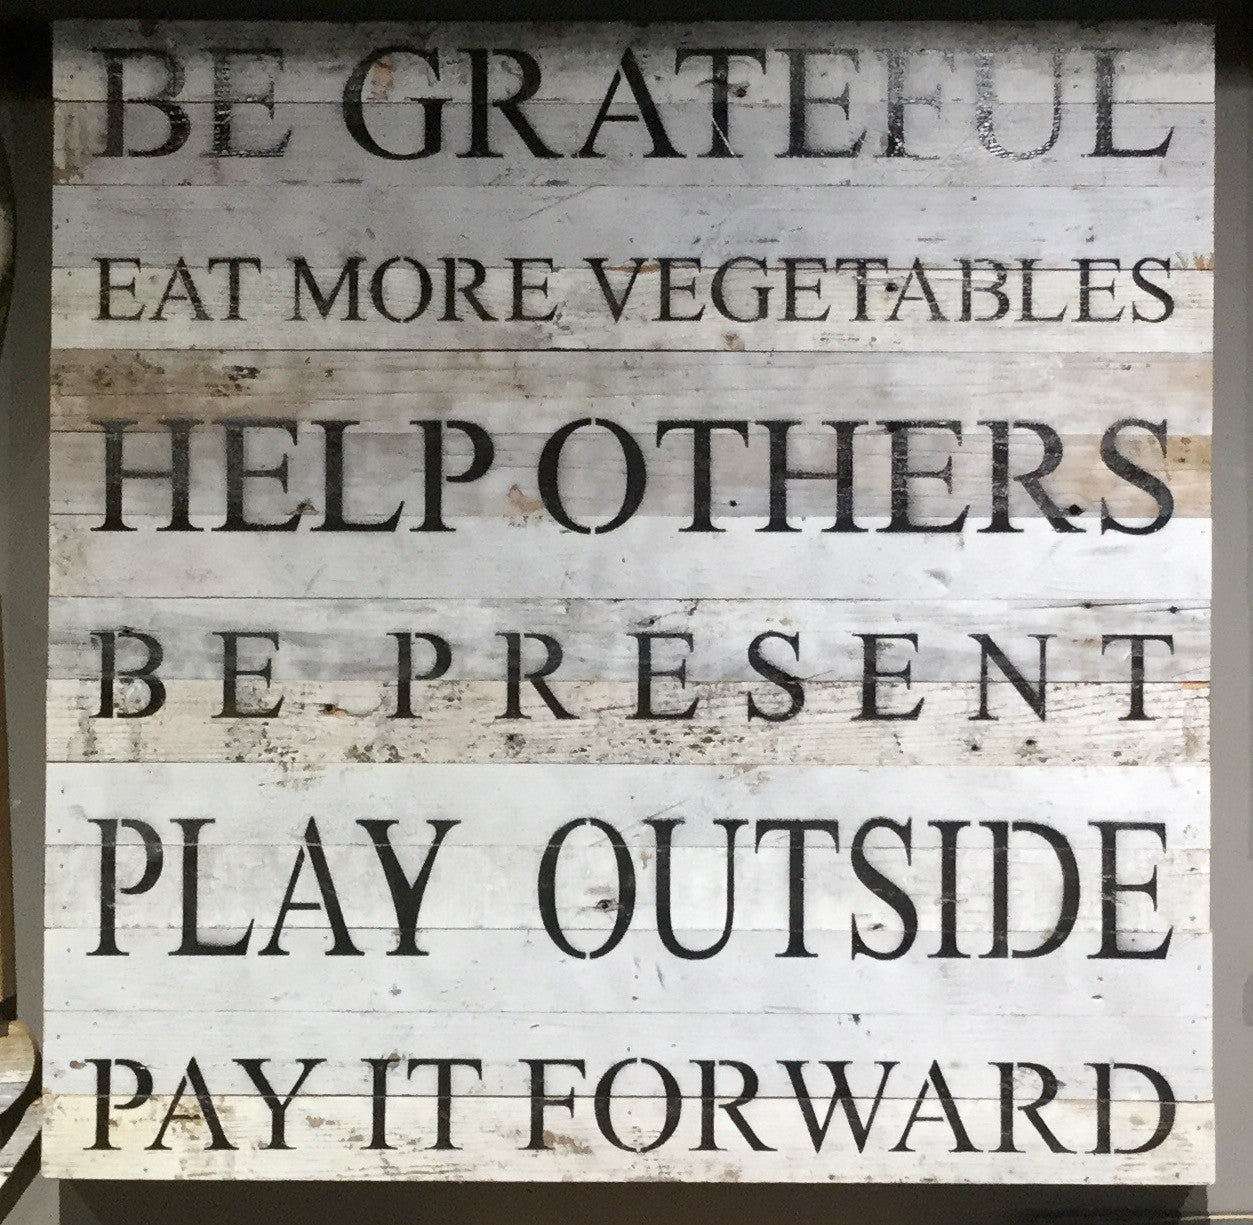 Be Grateful Eat More Vegetables Help Others Be Present